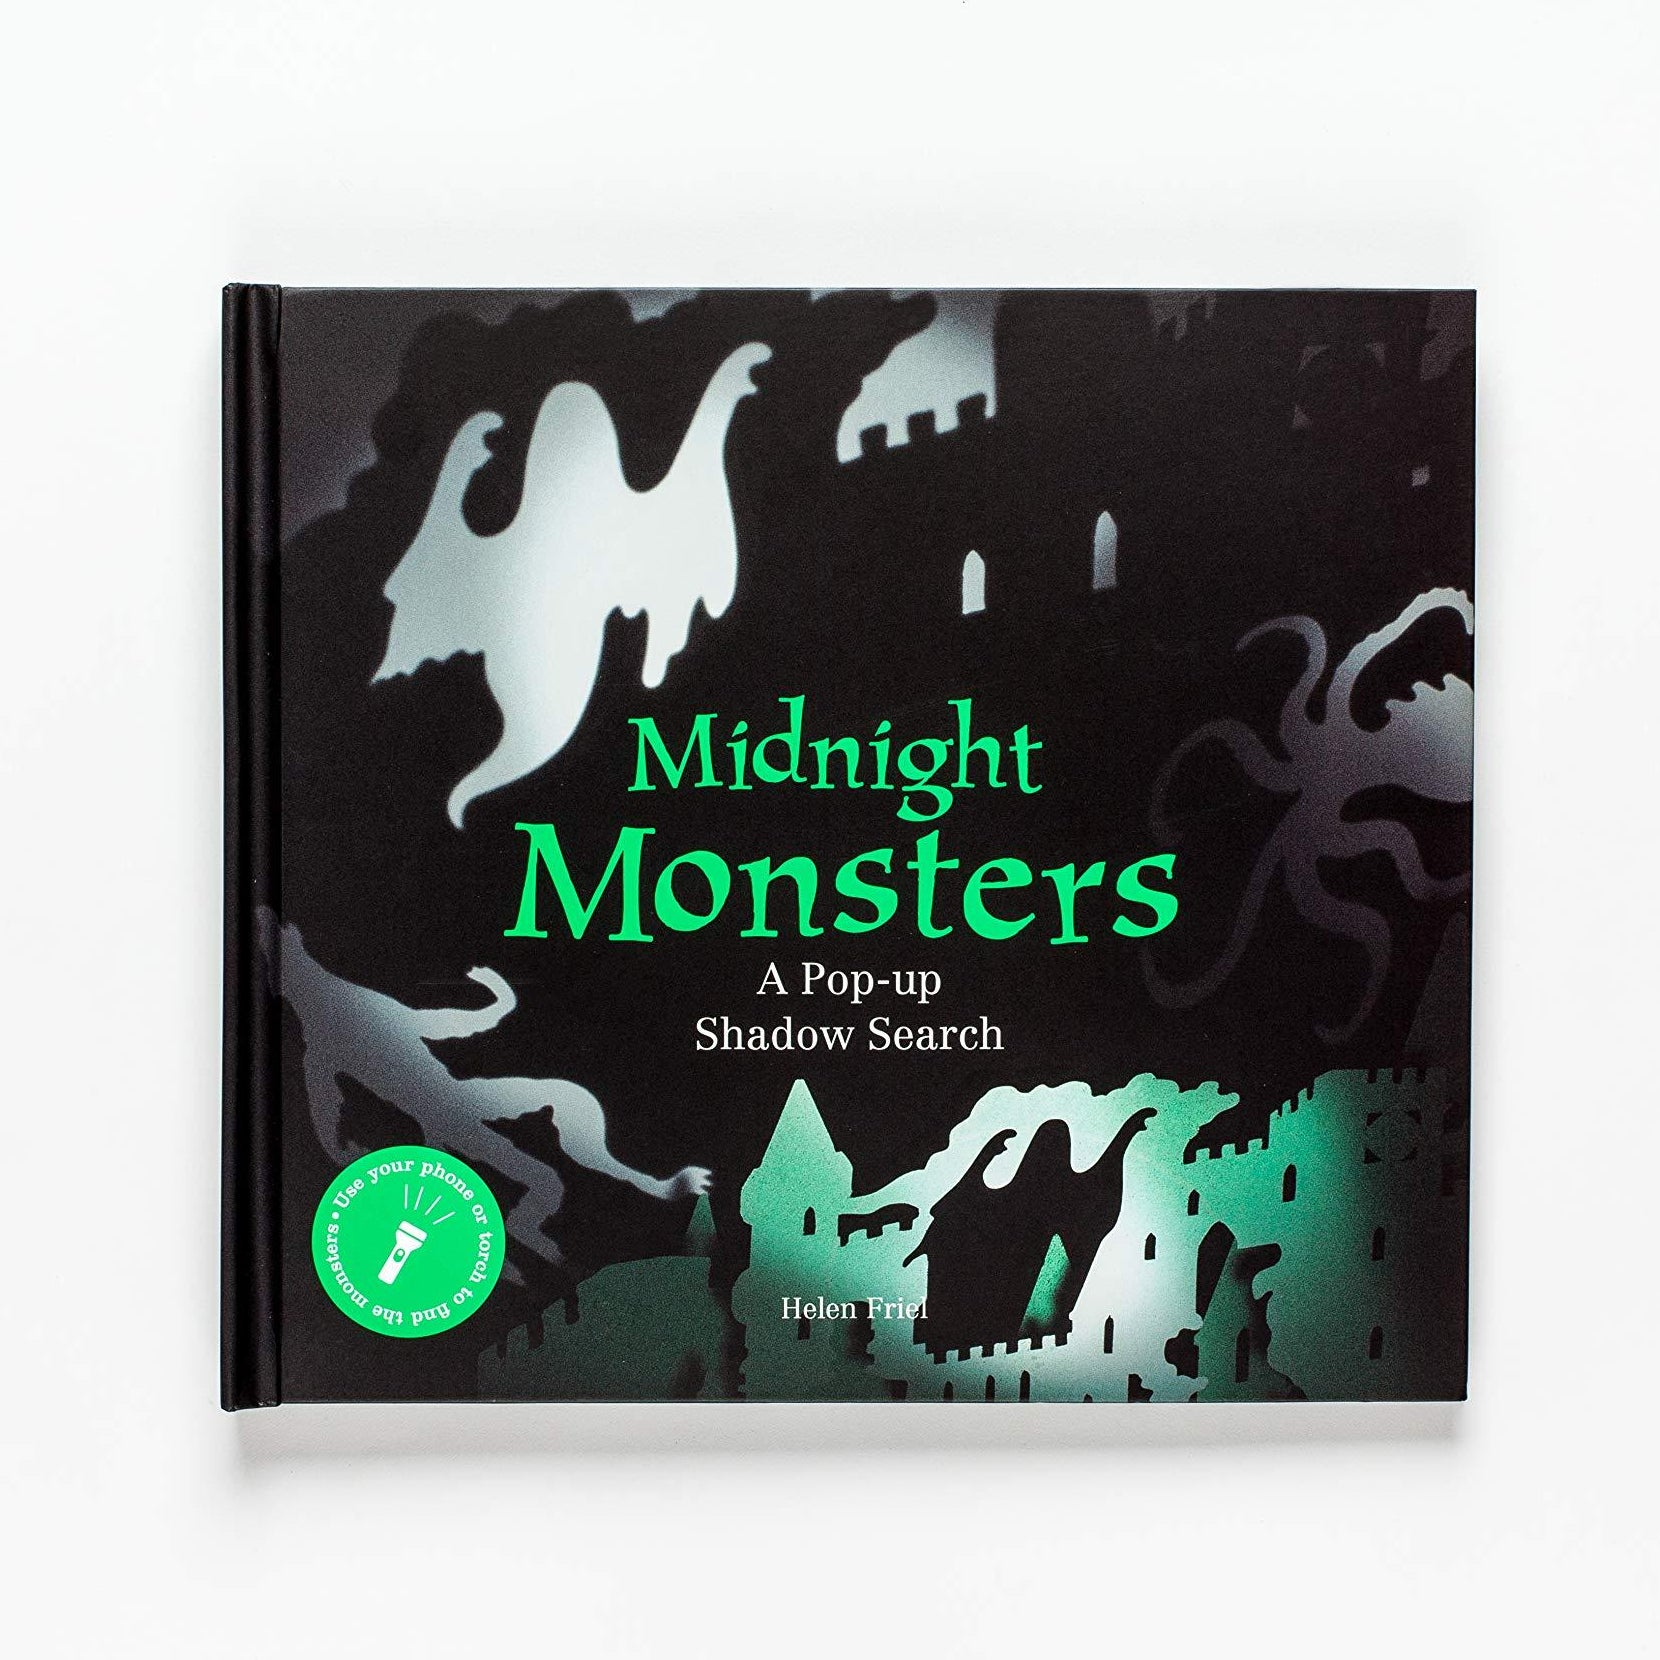 Midnight Monsters: A Pop-up Shadow Search - Me Books Asia Store